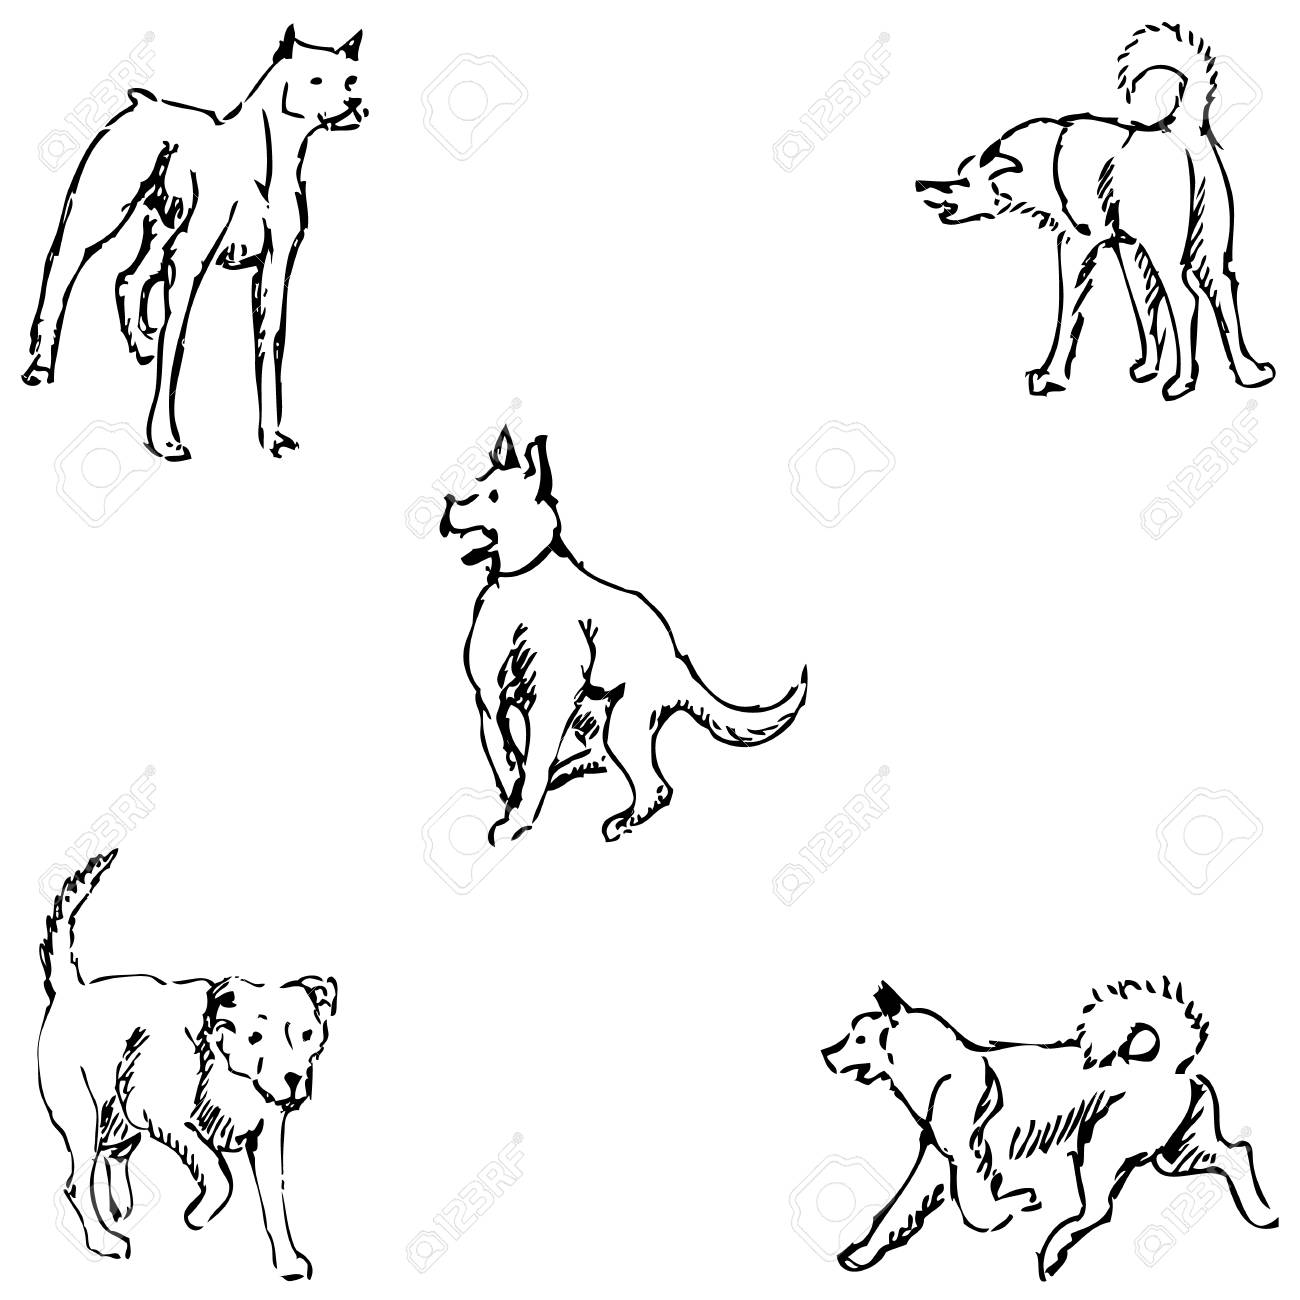 Dogs sketch pencil drawing by hand vector image stock vector 67875611